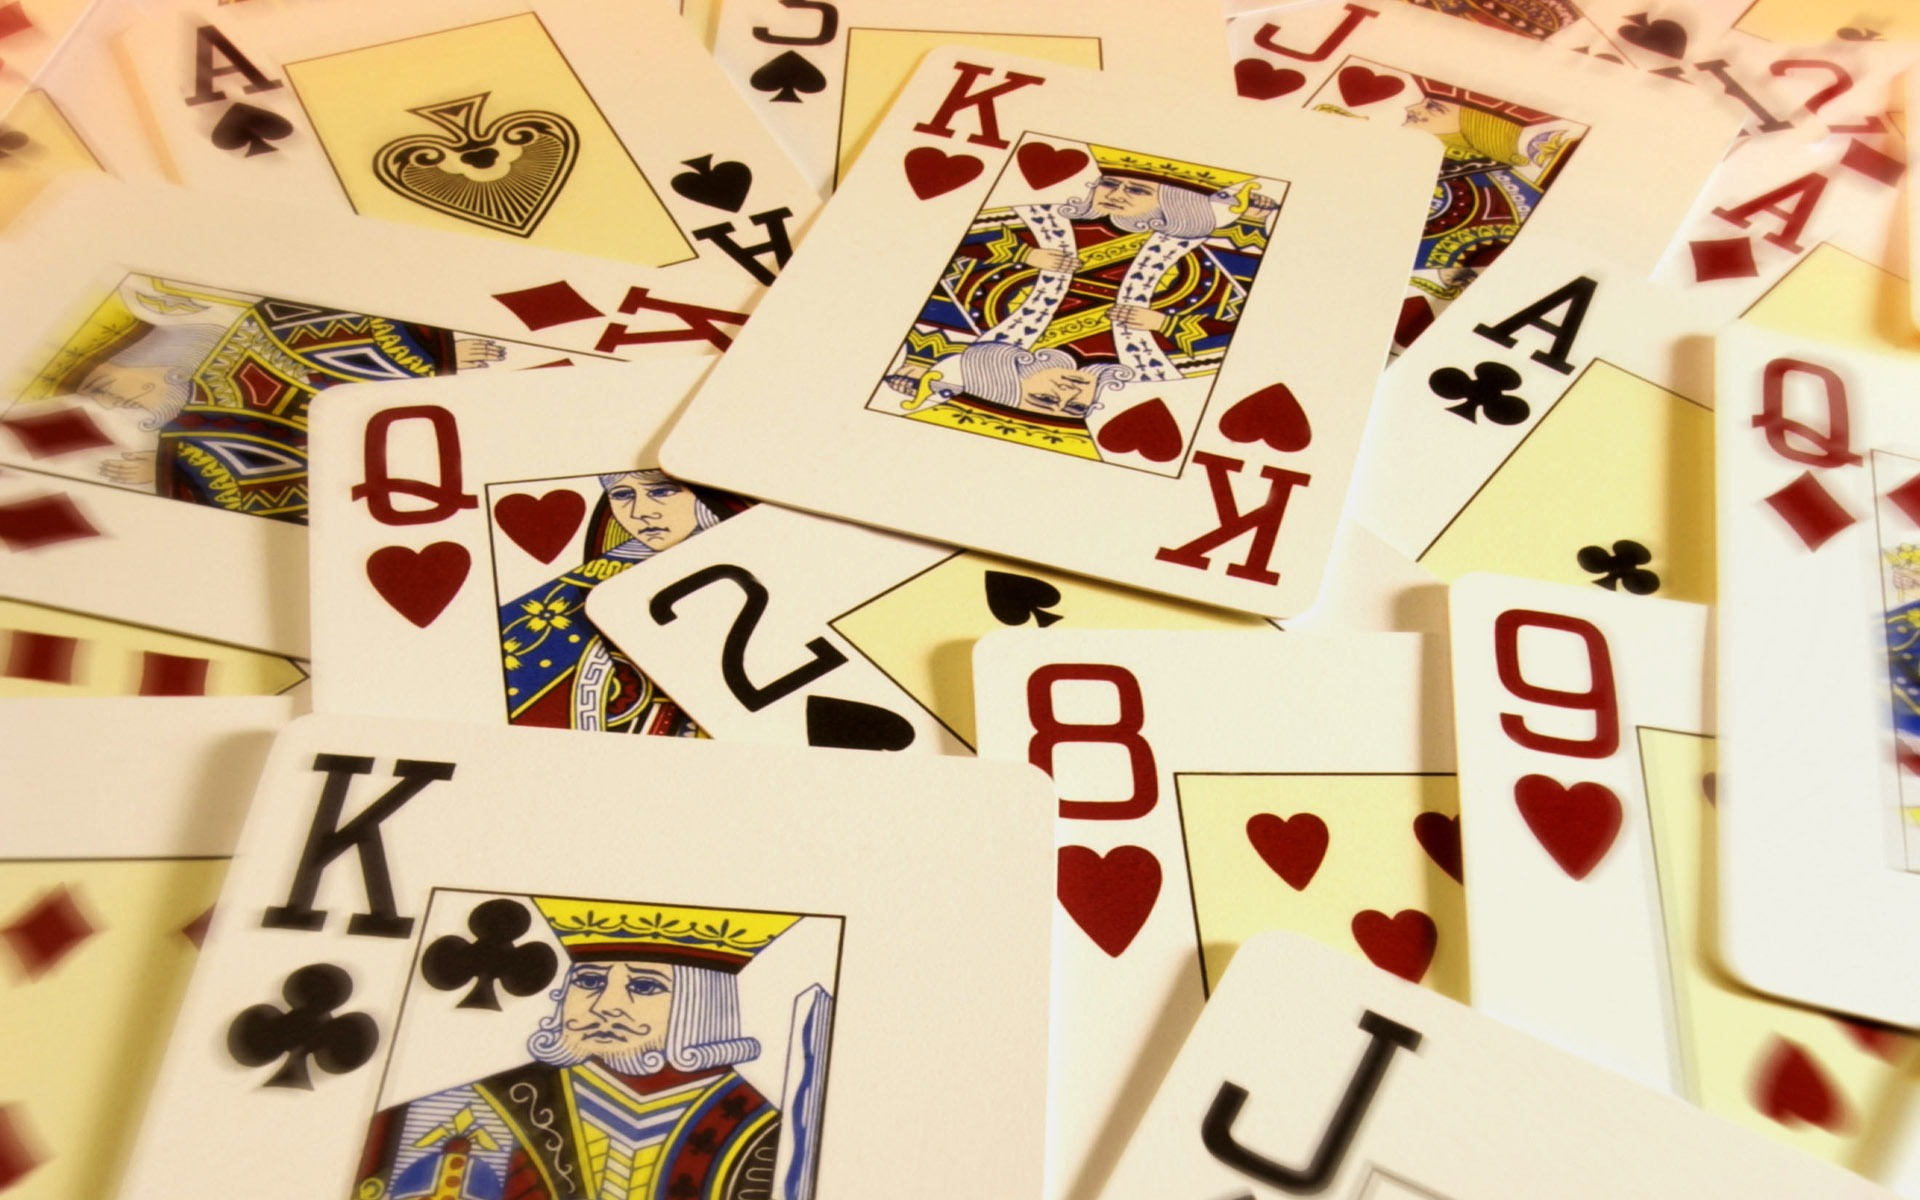 13-cards-rummy